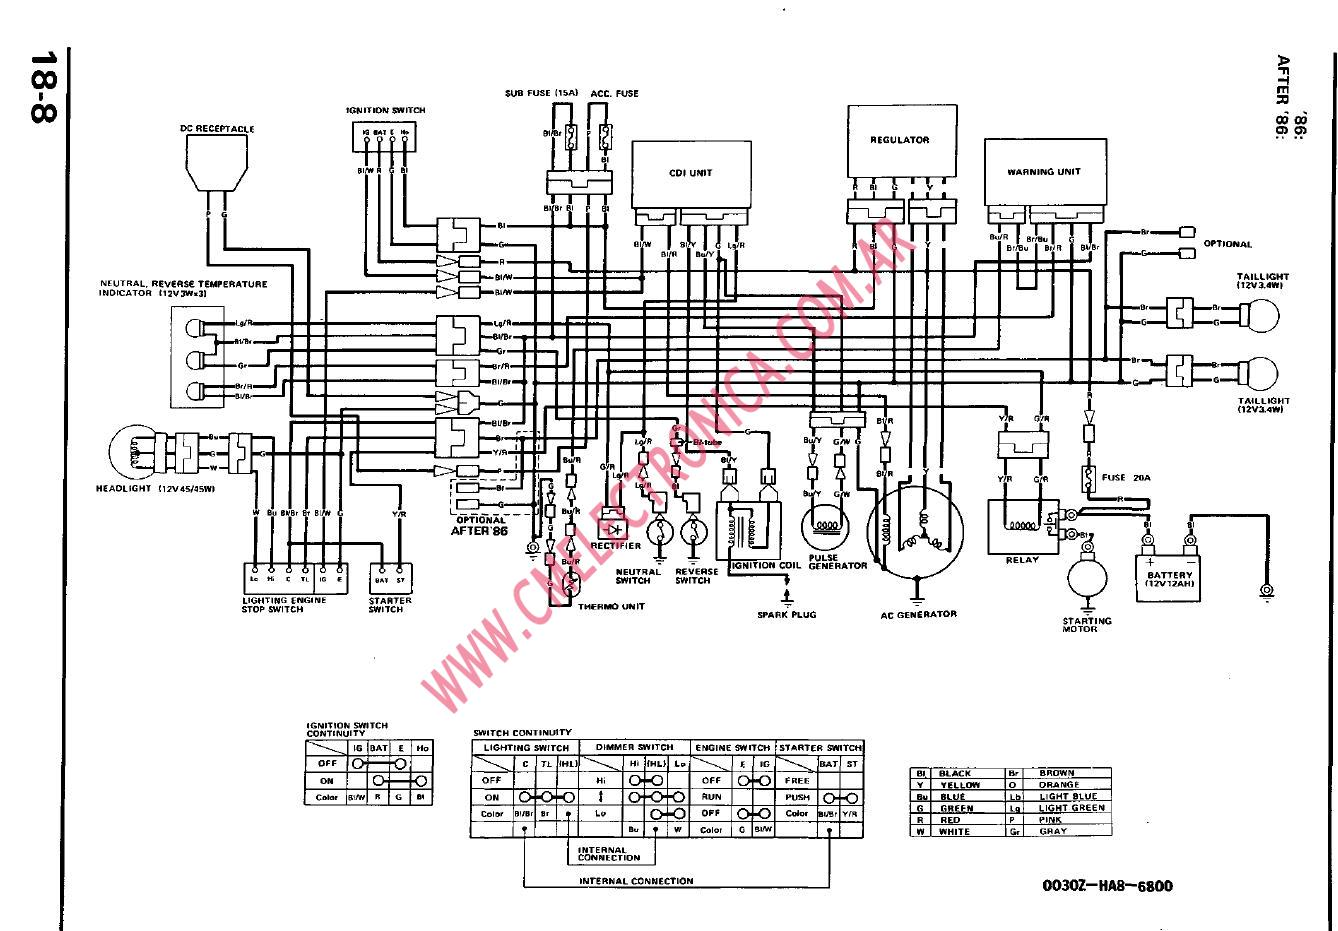 crf250x wiring diagram explained wiring diagrams electrical wiring 250x wiring diagram product wiring diagrams \\u2022 crf250x fan diagram crf250x wiring diagram